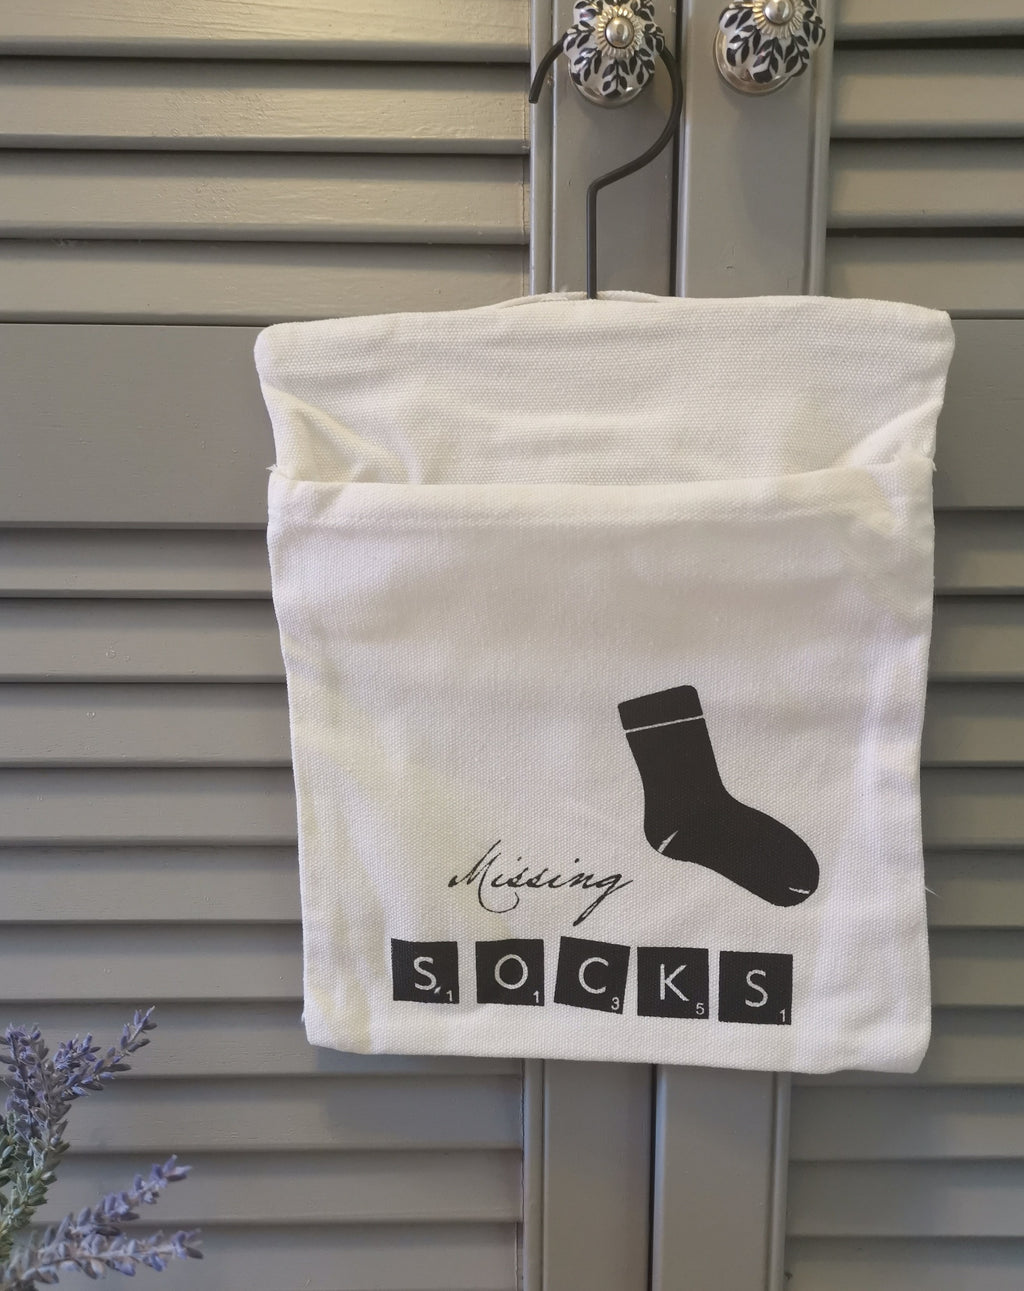 Missing Socks Bag - TBI